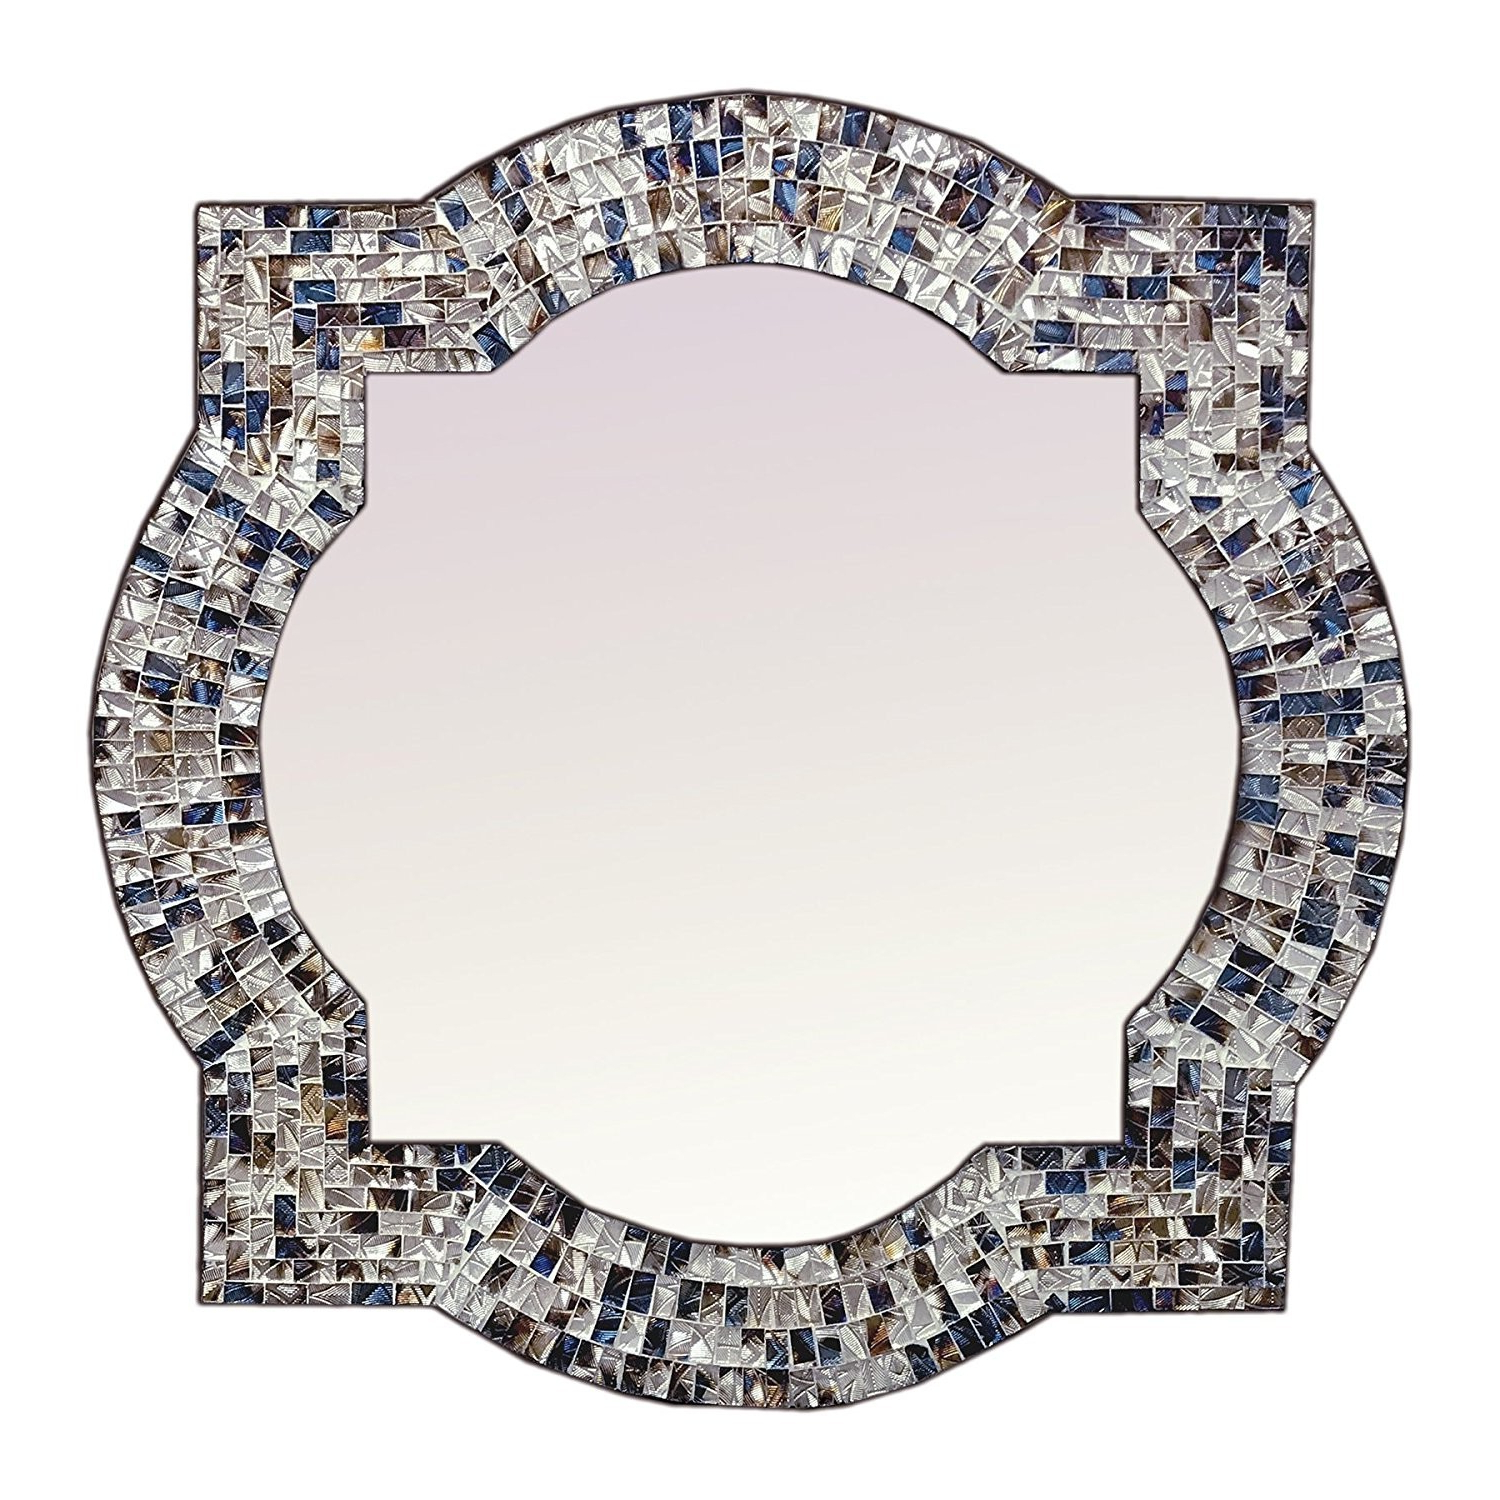 "Widely Used Mosaic Framed Wall Mirrors Intended For Andalusian Quatrefoil Mirror, Lindaraja Designer Mosaic Glass Framed Wall Mirror, 24""x24"" Colorful Wall Mirror (multi Silver) (View 16 of 20)"